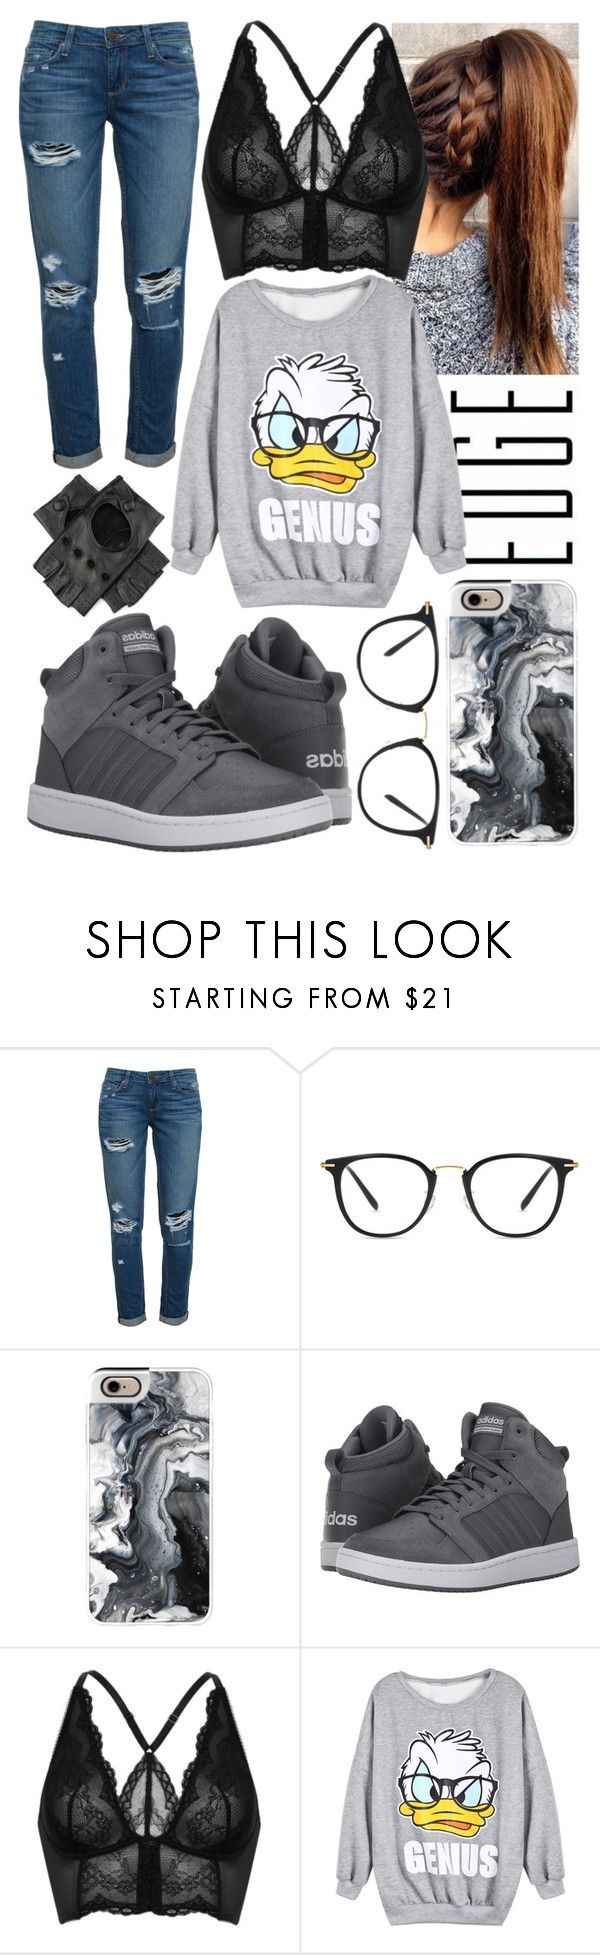 """Hide"" by blom-sofie ❤ liked on Polyvore featuring Paige Denim, Casetify, adidas, Gossard and Black"